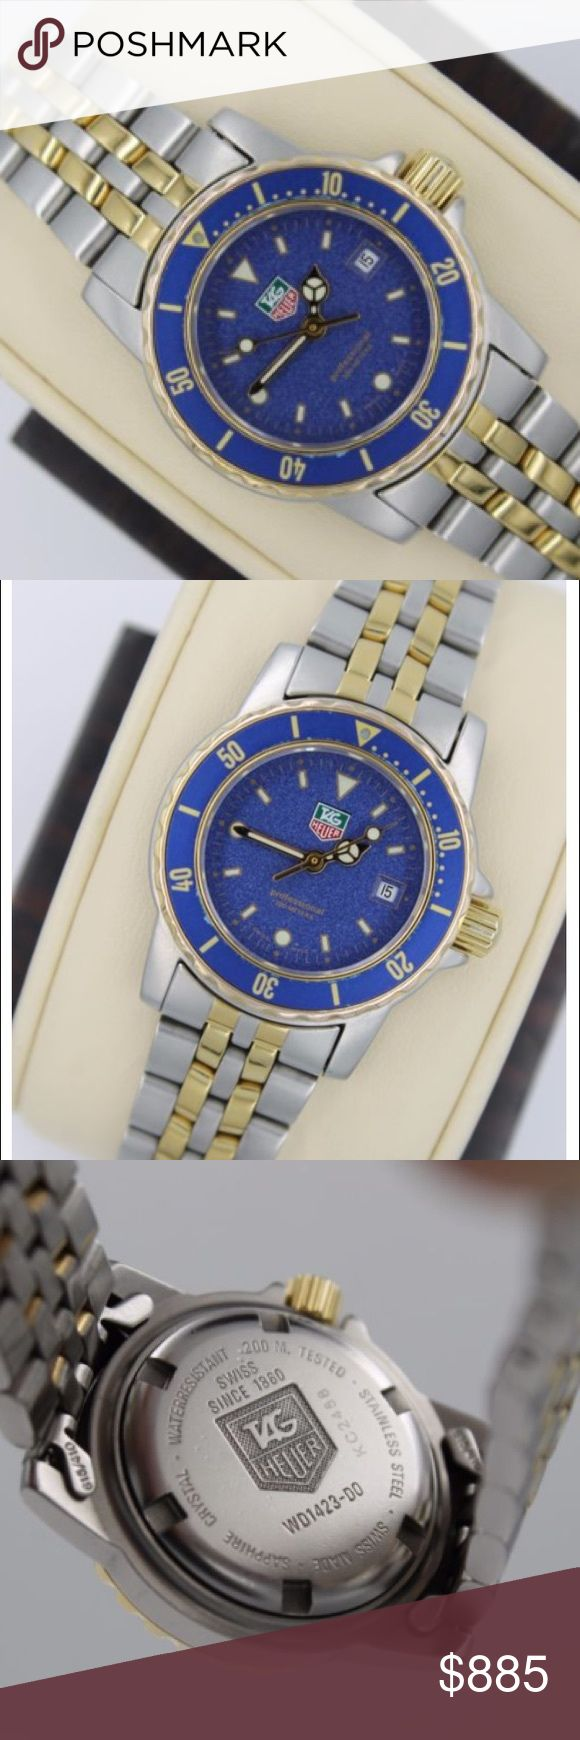 Tag Heuer WD1423 1500 Professional Blue SS Watch Tag Heuer WD1423 women's 1500 professional. It's case diameter is  28mm.....31mm w/crown. The crystal is in mint condition. The back casing perfect. The bracelet is stainless steel and gold plated..The bezel shows look perfect. I would rate as a solid 9 out of 10. New battery. Will fit 6.85 inch or smaller. Has rare wet suit extender so will fit larger than 6.85. Bezel turns in counter clockwise direction. It is quartz movement and 200 meters…